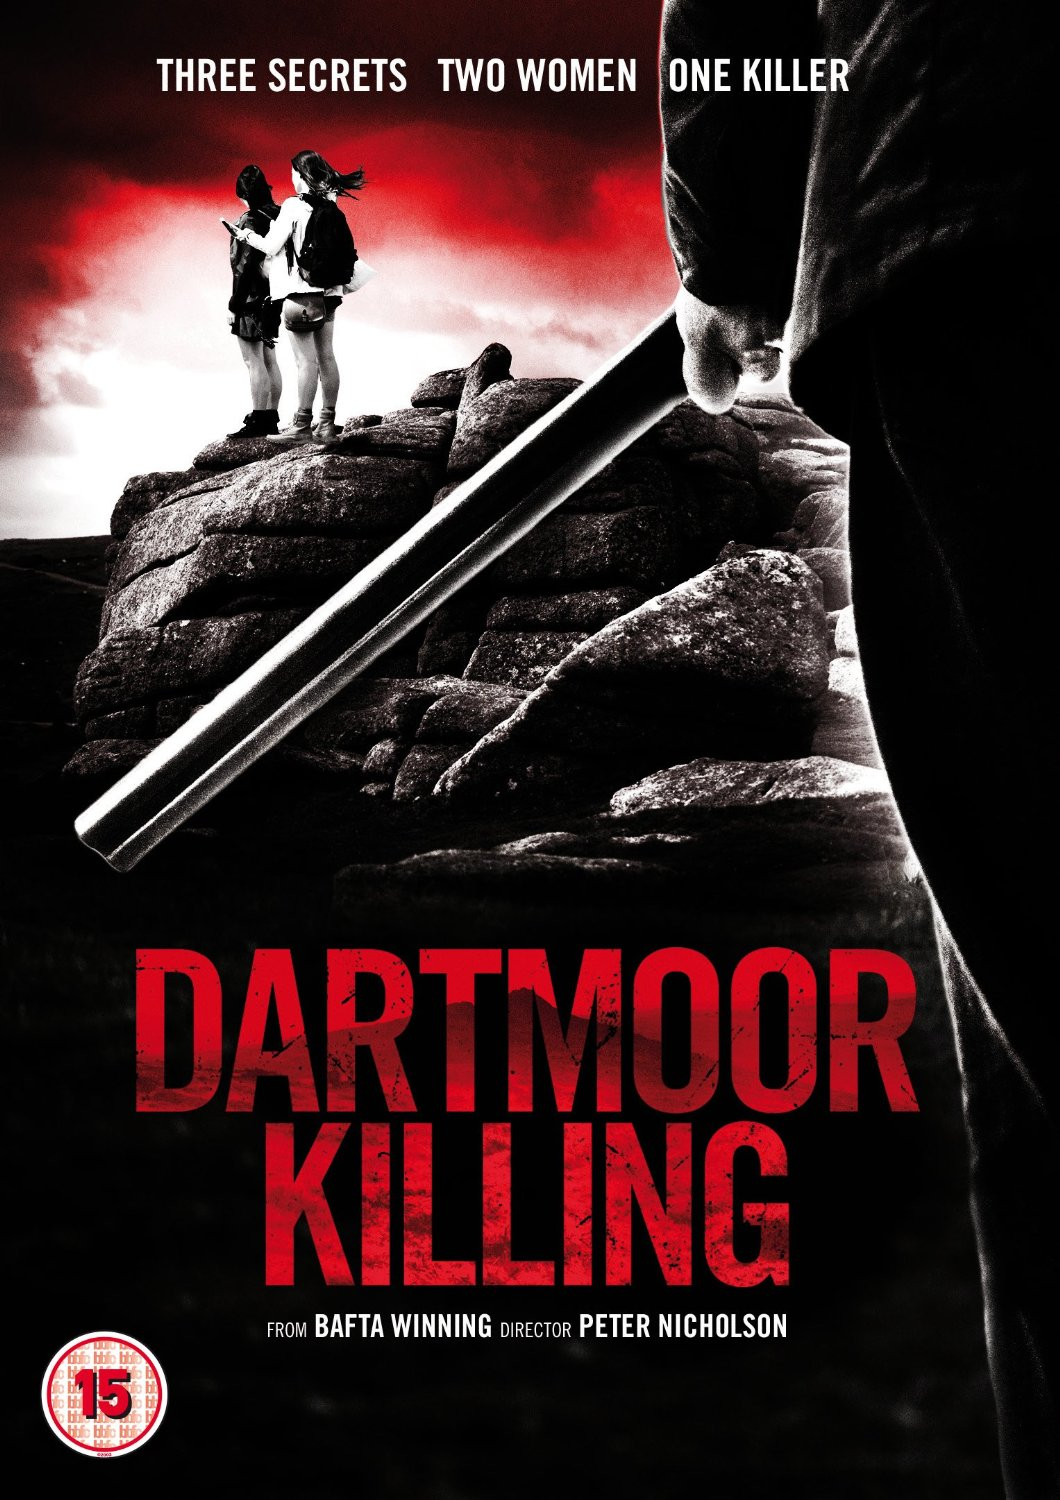 فيلم Dartmoor Killing مترجم